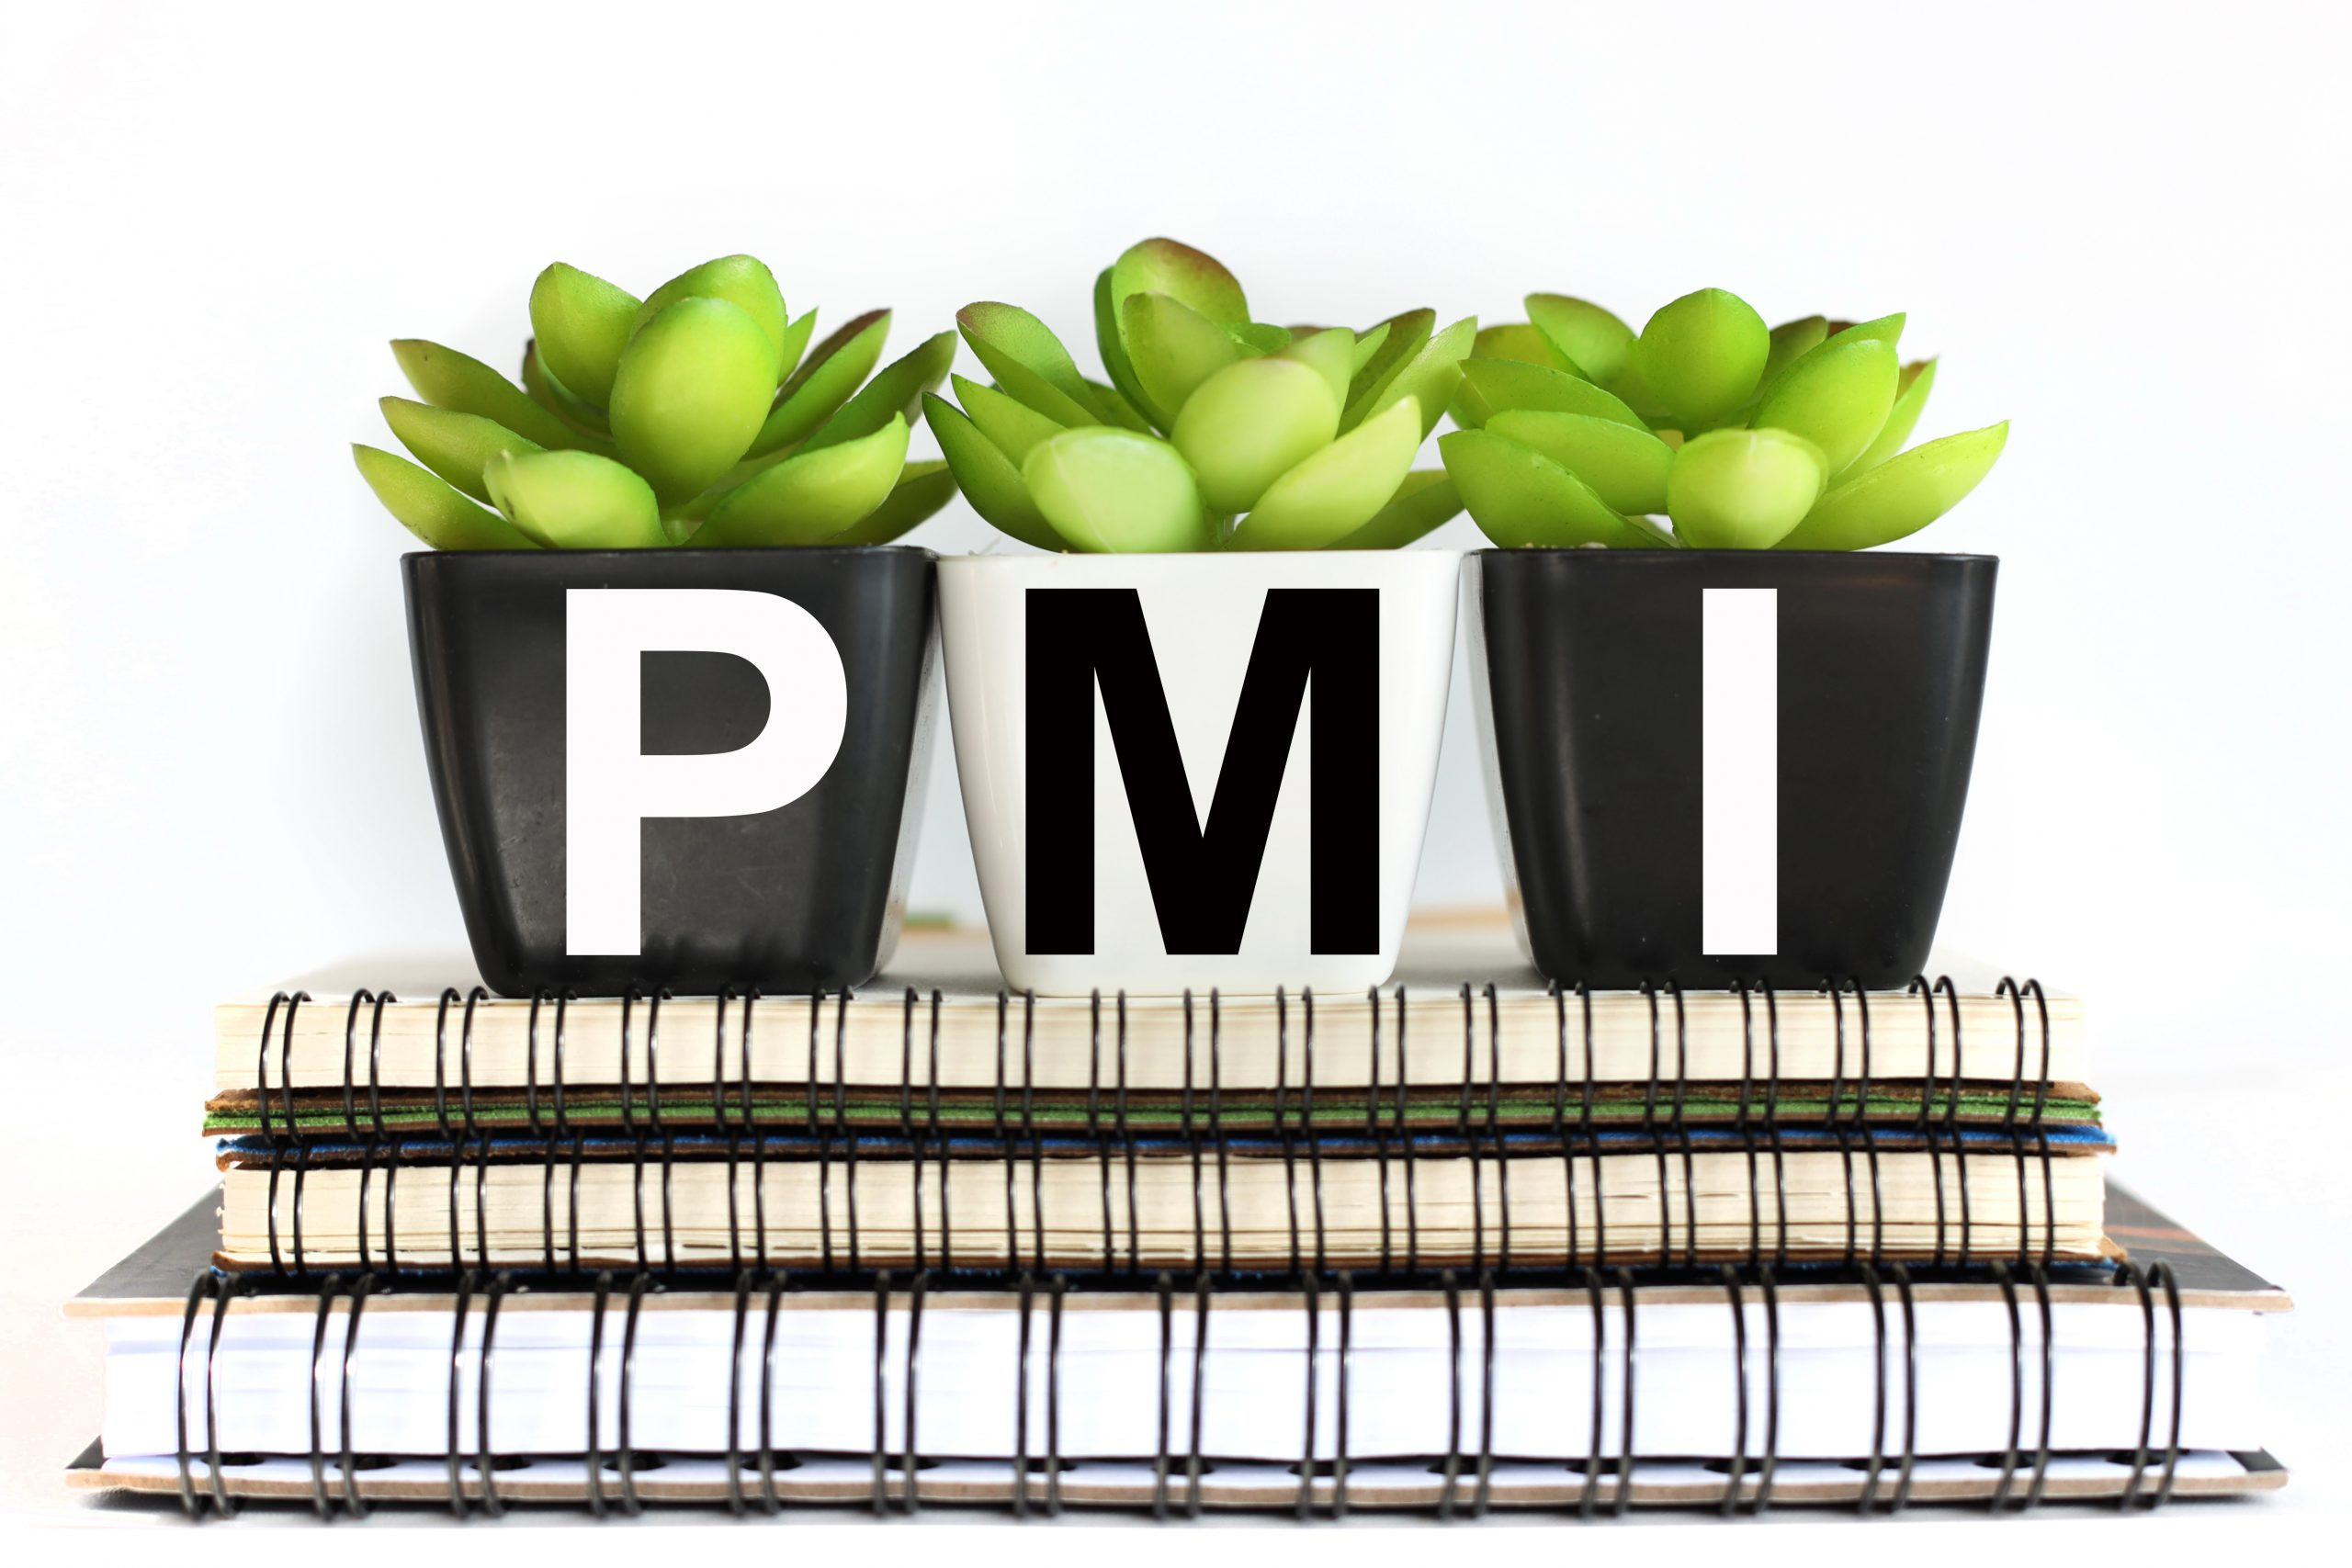 What does PMI stand for in finance?